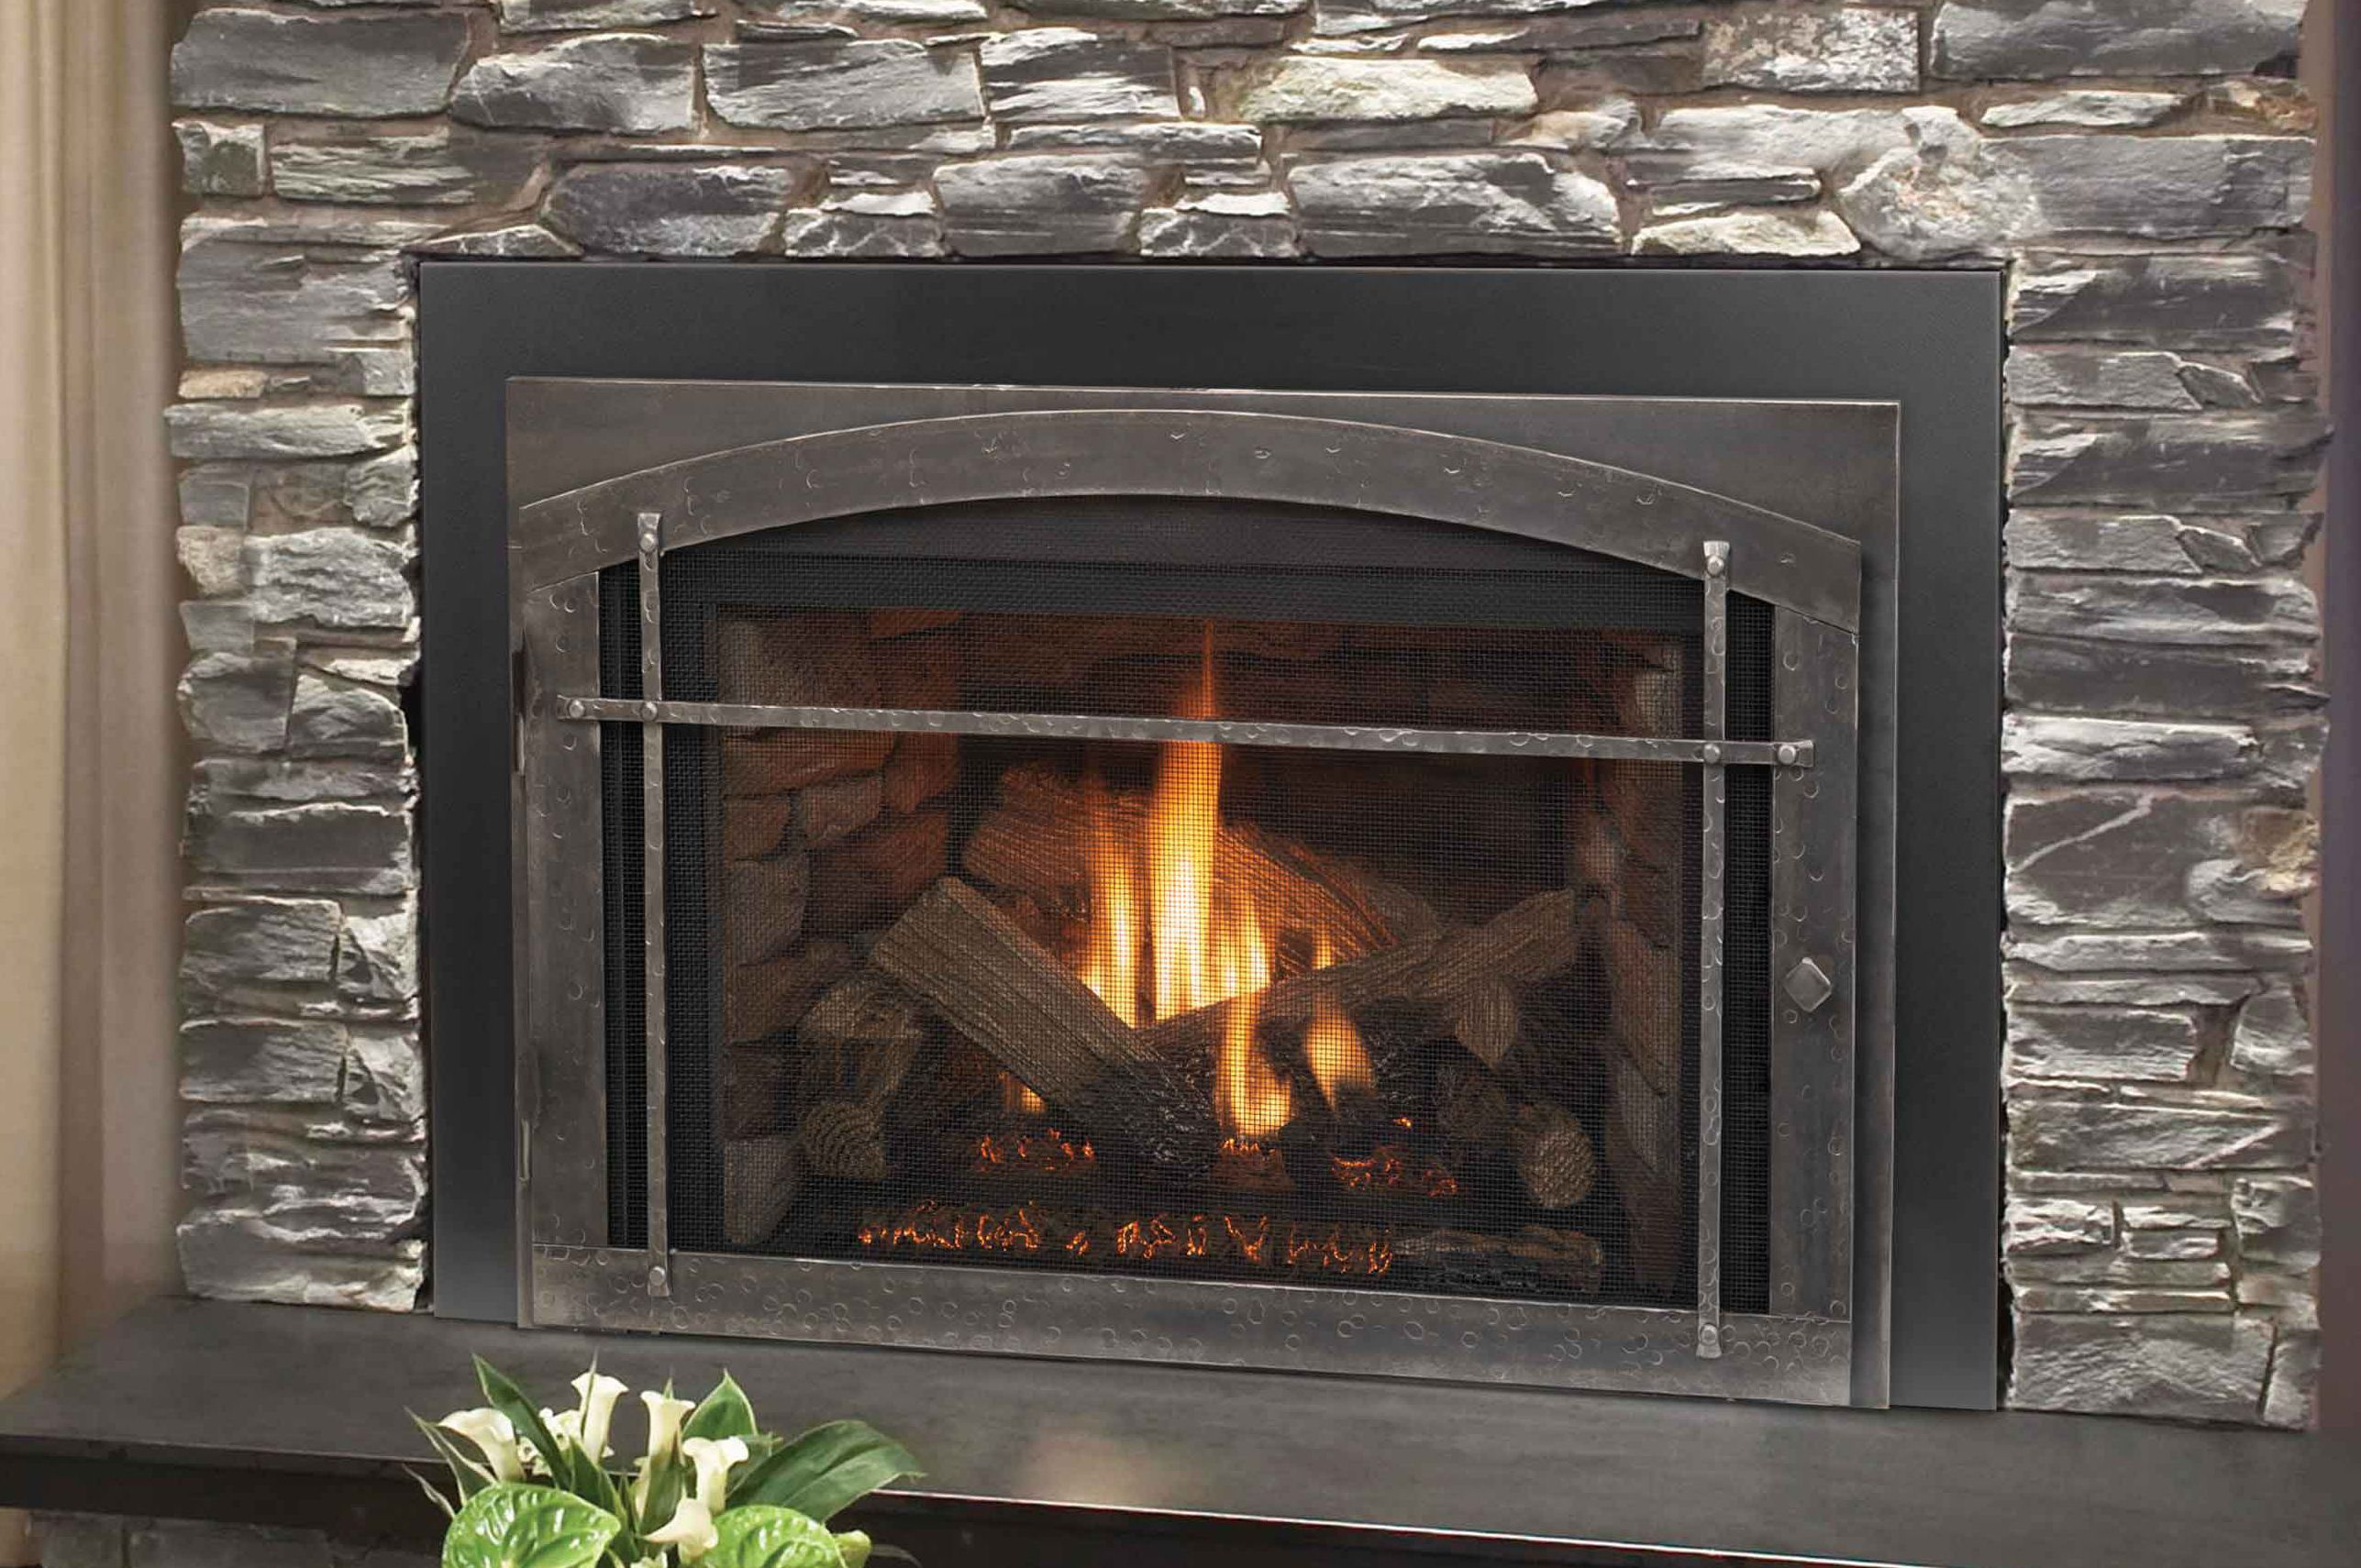 a gas fireplace requires pushing a button often on a remote